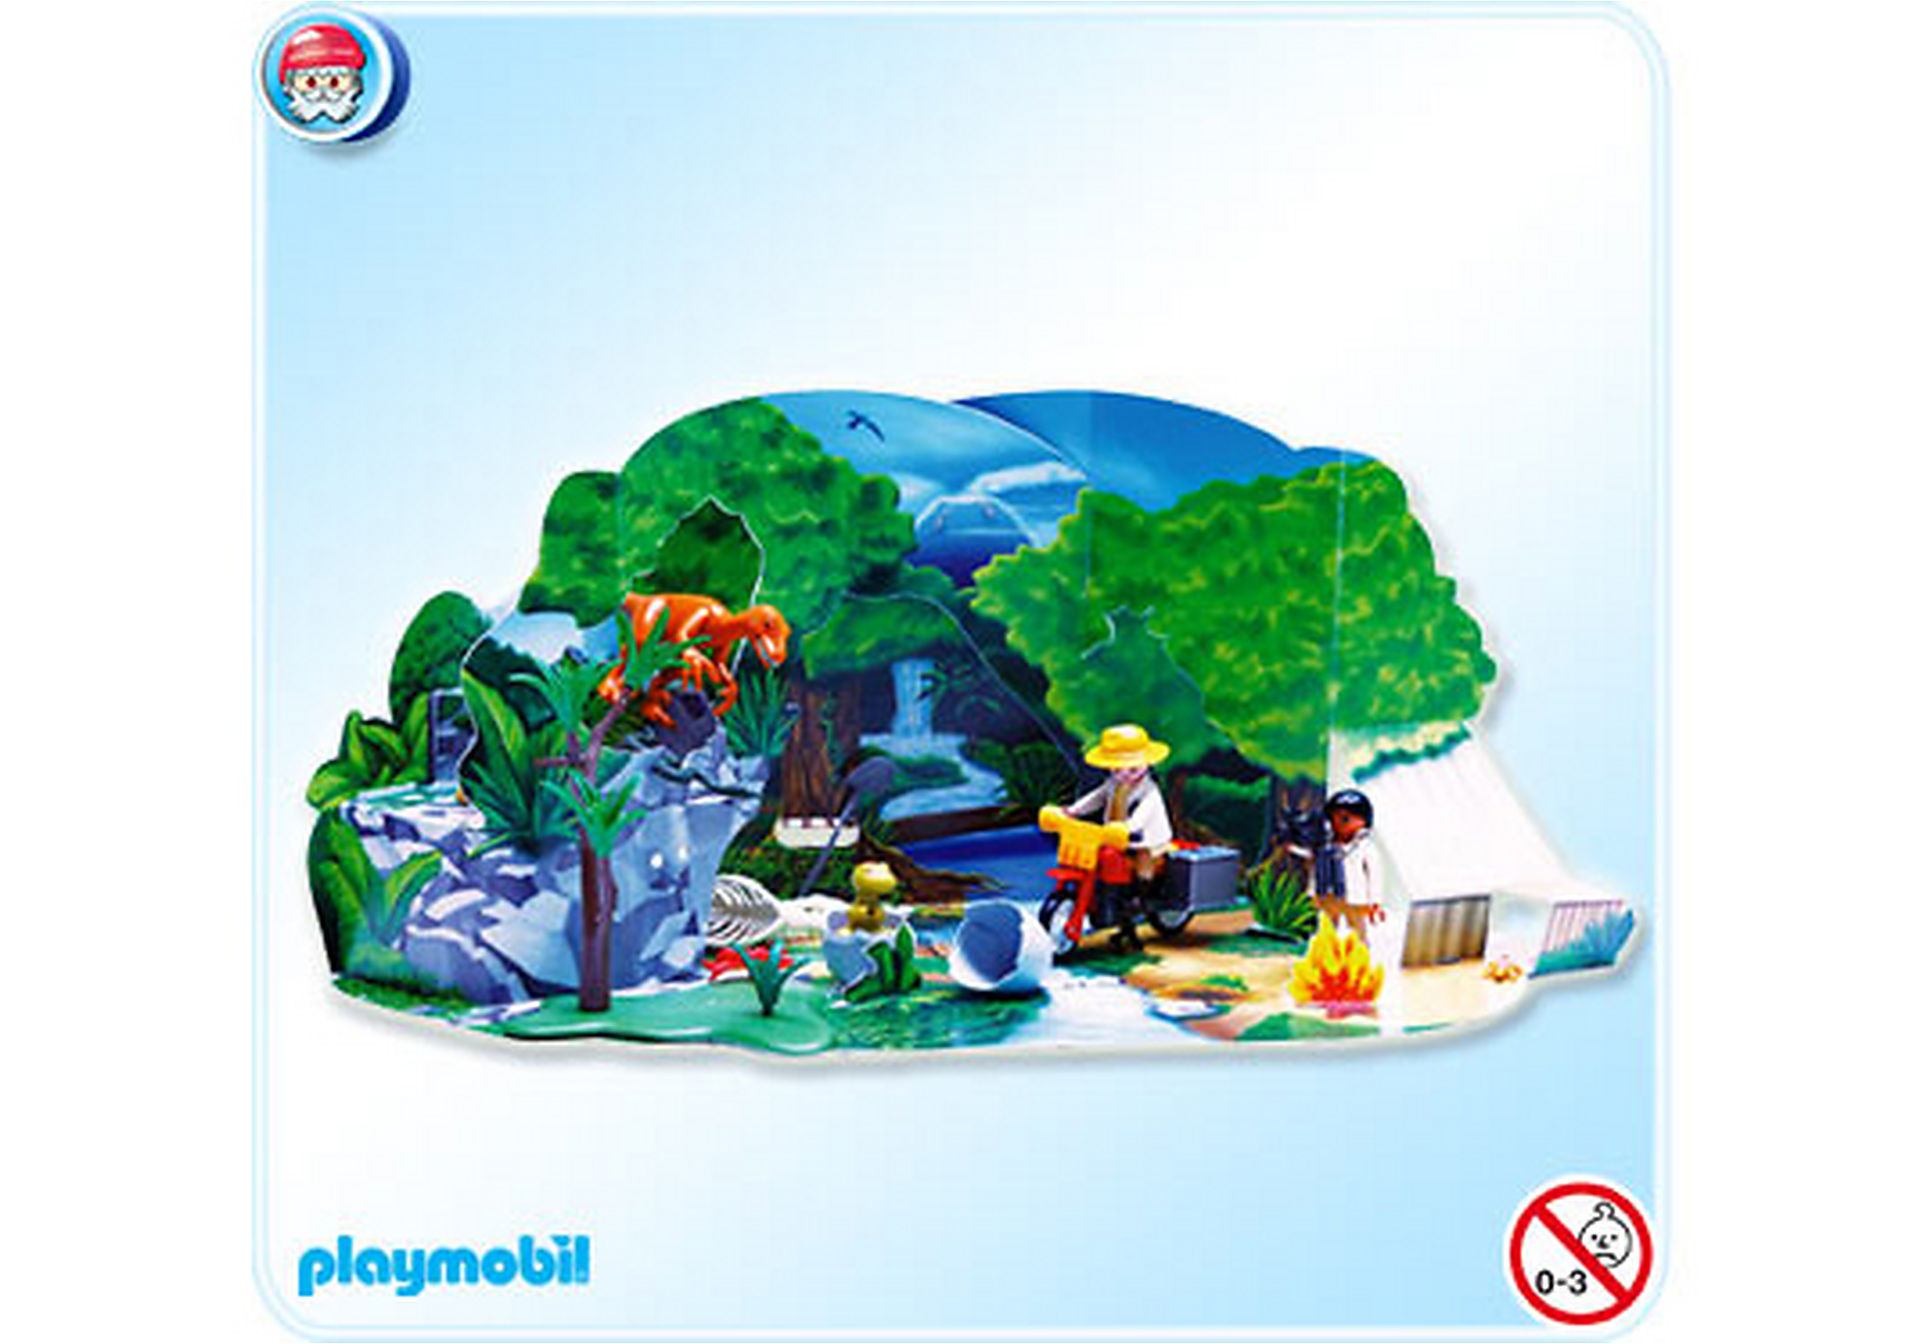 http://media.playmobil.com/i/playmobil/4162-A_product_detail/Adventskalender Dino-Expedition